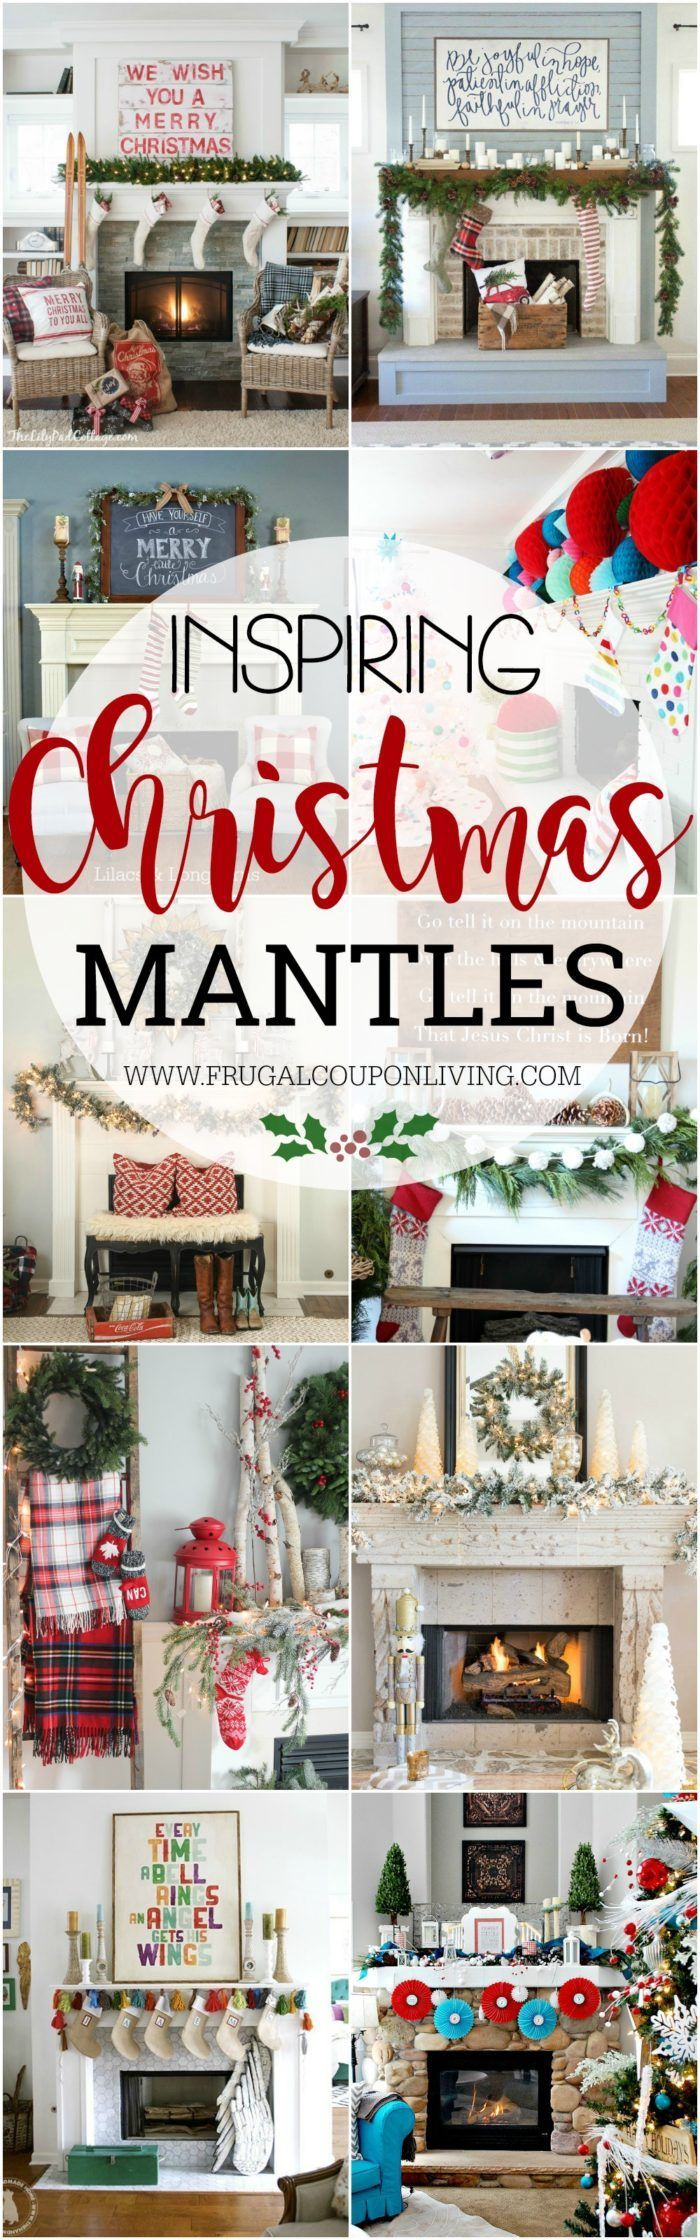 Christmas Decor, Creative and Inspiring Christmas Mantles for your holiday home tour on Frugal Coupon Living. #christmas #homedecor #hometour #mantle #mantledecor